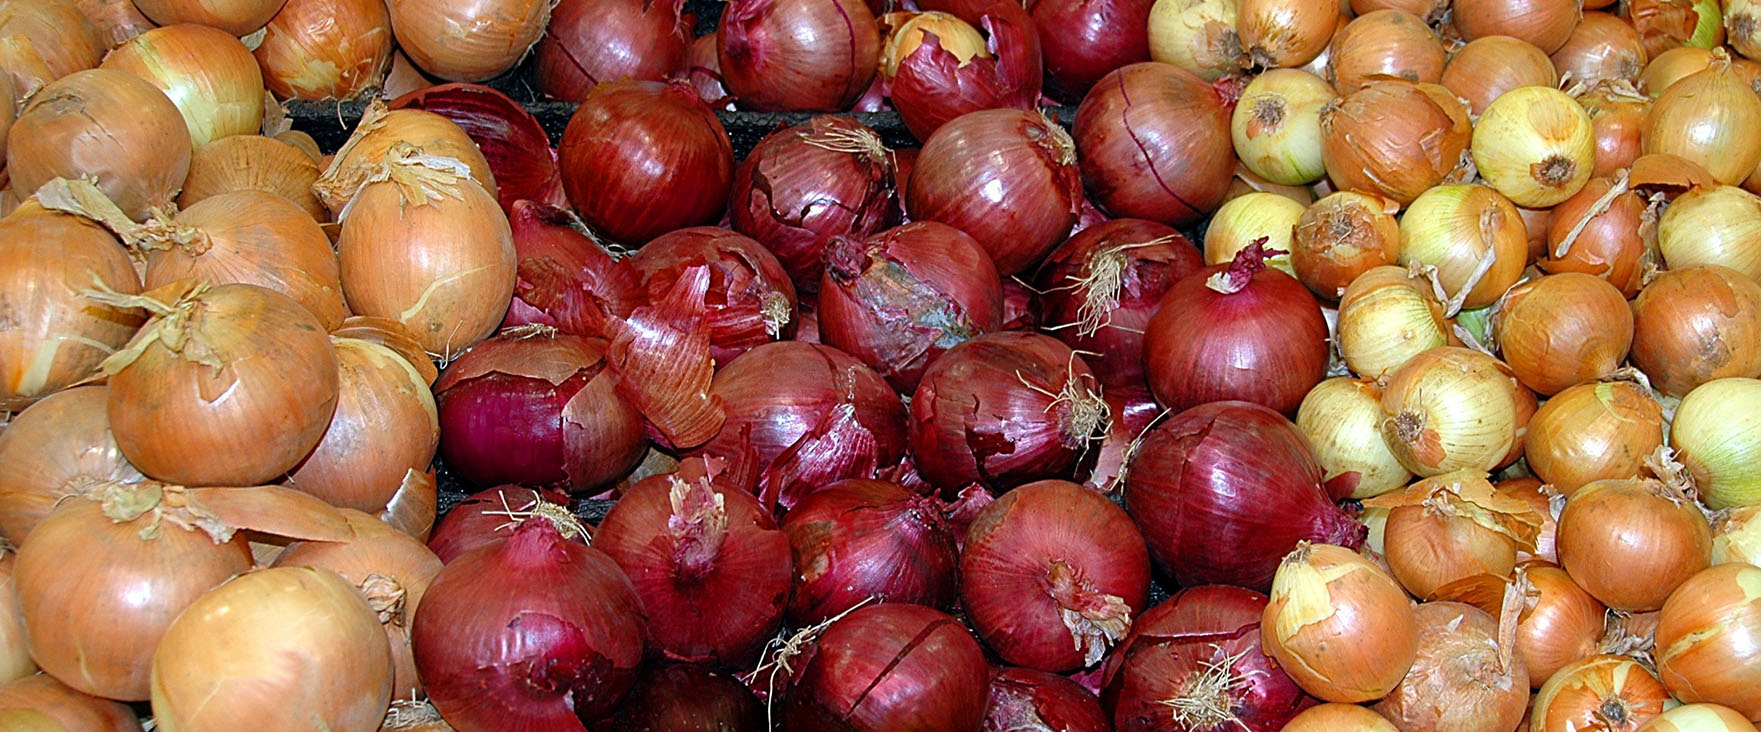 Organic Onions Heading Into Tight Supply Situation